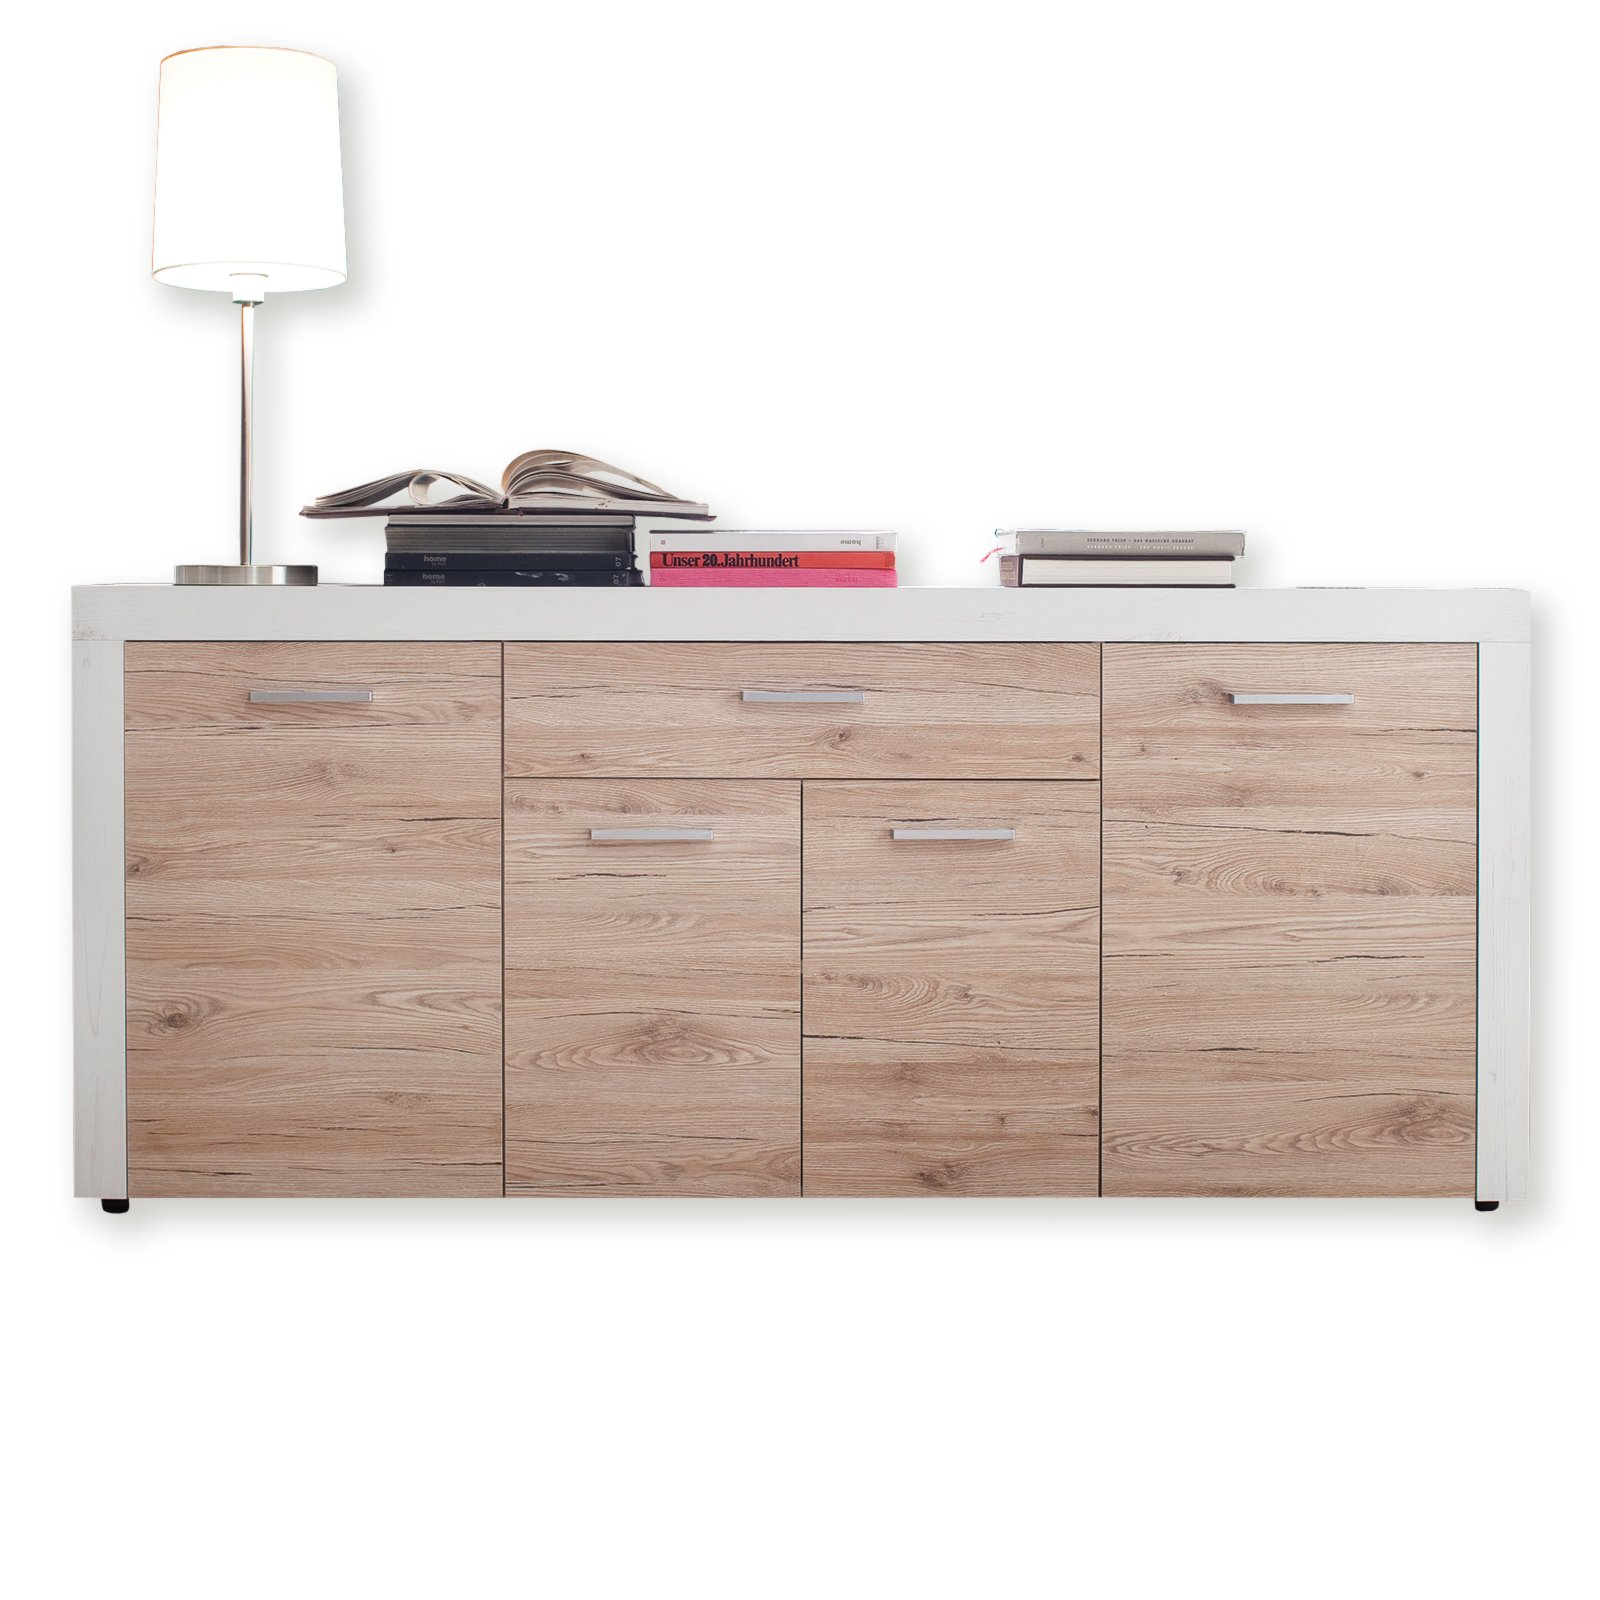 sideboard phoenix pinie wei sandeiche 177 cm kommoden sideboards m bel m belhaus. Black Bedroom Furniture Sets. Home Design Ideas